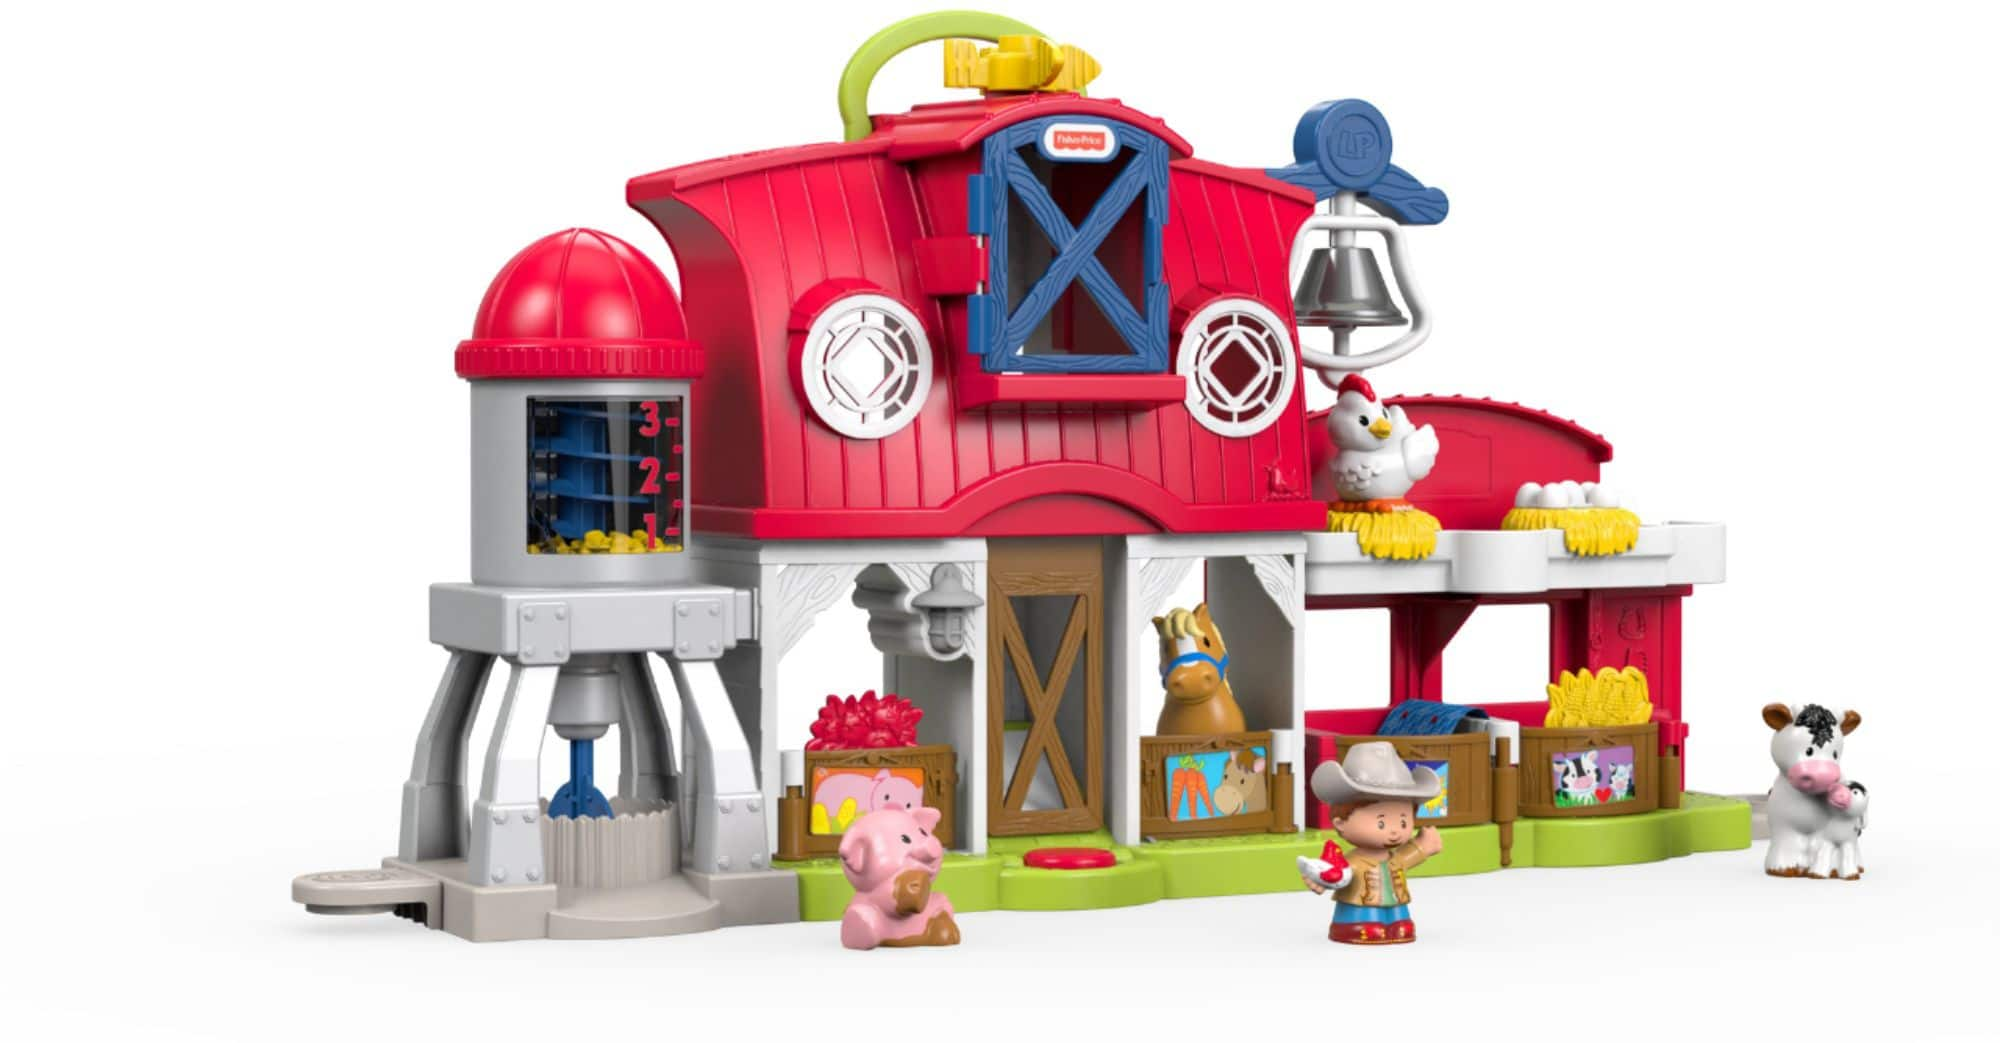 Fisher-Price Little People Caring For Animals Farm Set $25 at Best Buy w/ Free Curbside Pickup